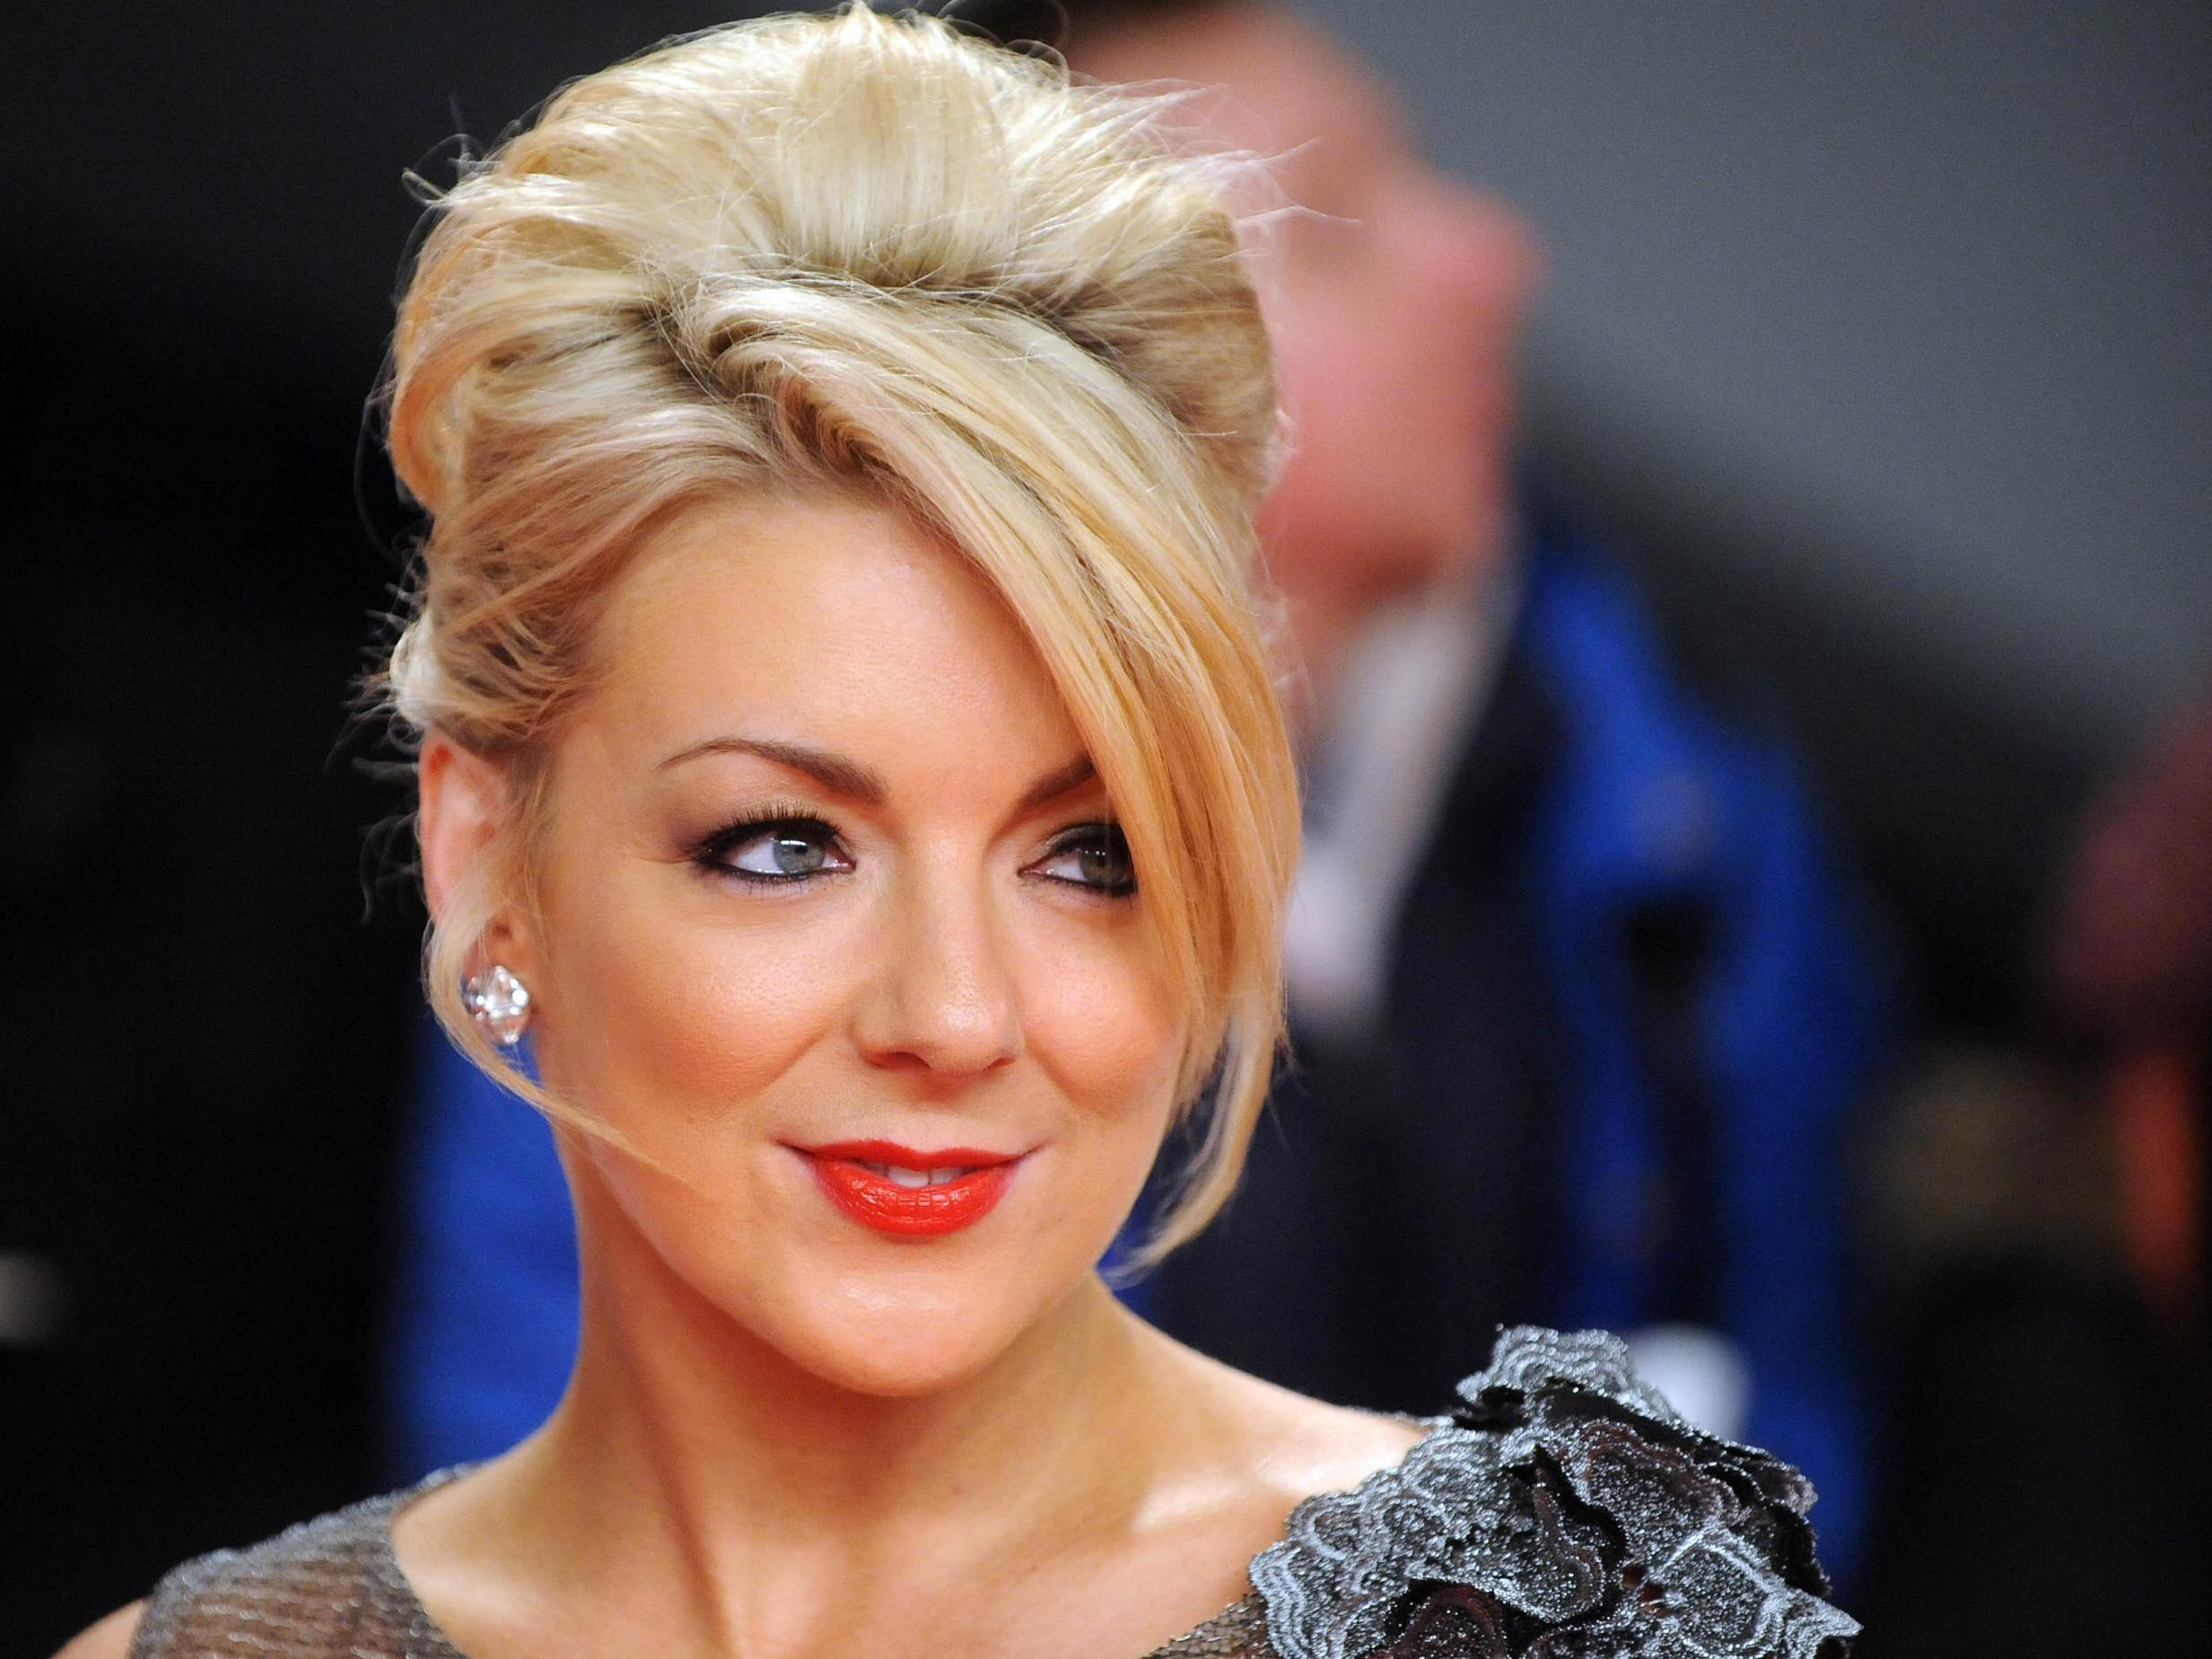 Sheridan Smith Says She Suffered Five Seizures When She Stopped Taking Anti Anxiety Medication The Independent The Independent